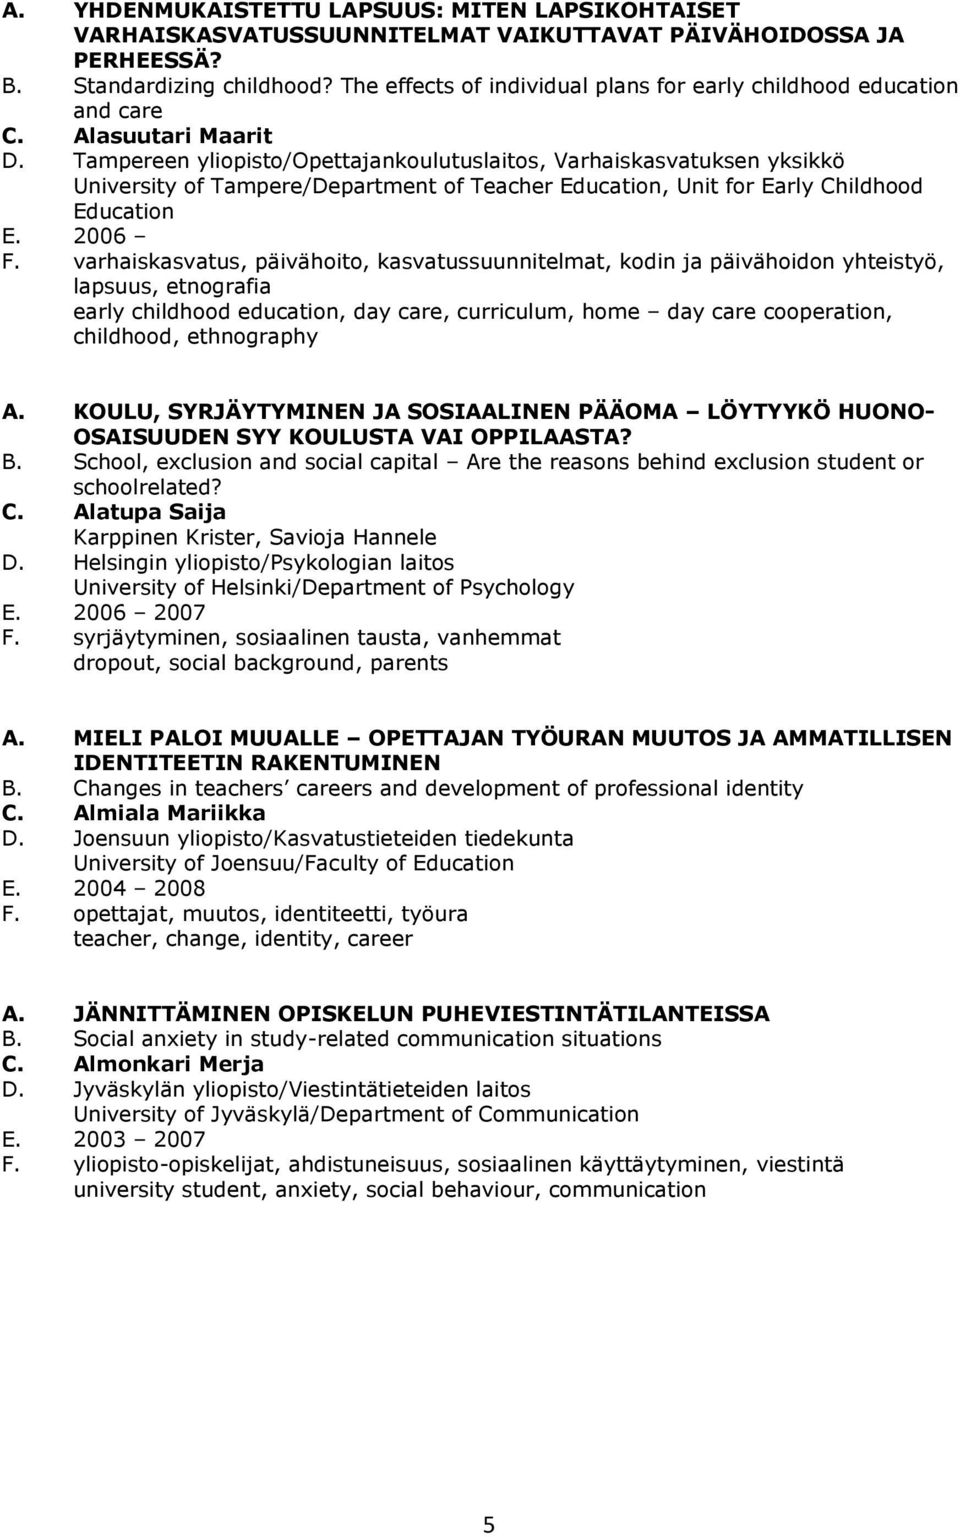 Tampereen yliopisto/opettajankoulutuslaitos, Varhaiskasvatuksen yksikkö University of Tampere/Department of Teacher Education, Unit for Early Childhood Education E. 2006 F.